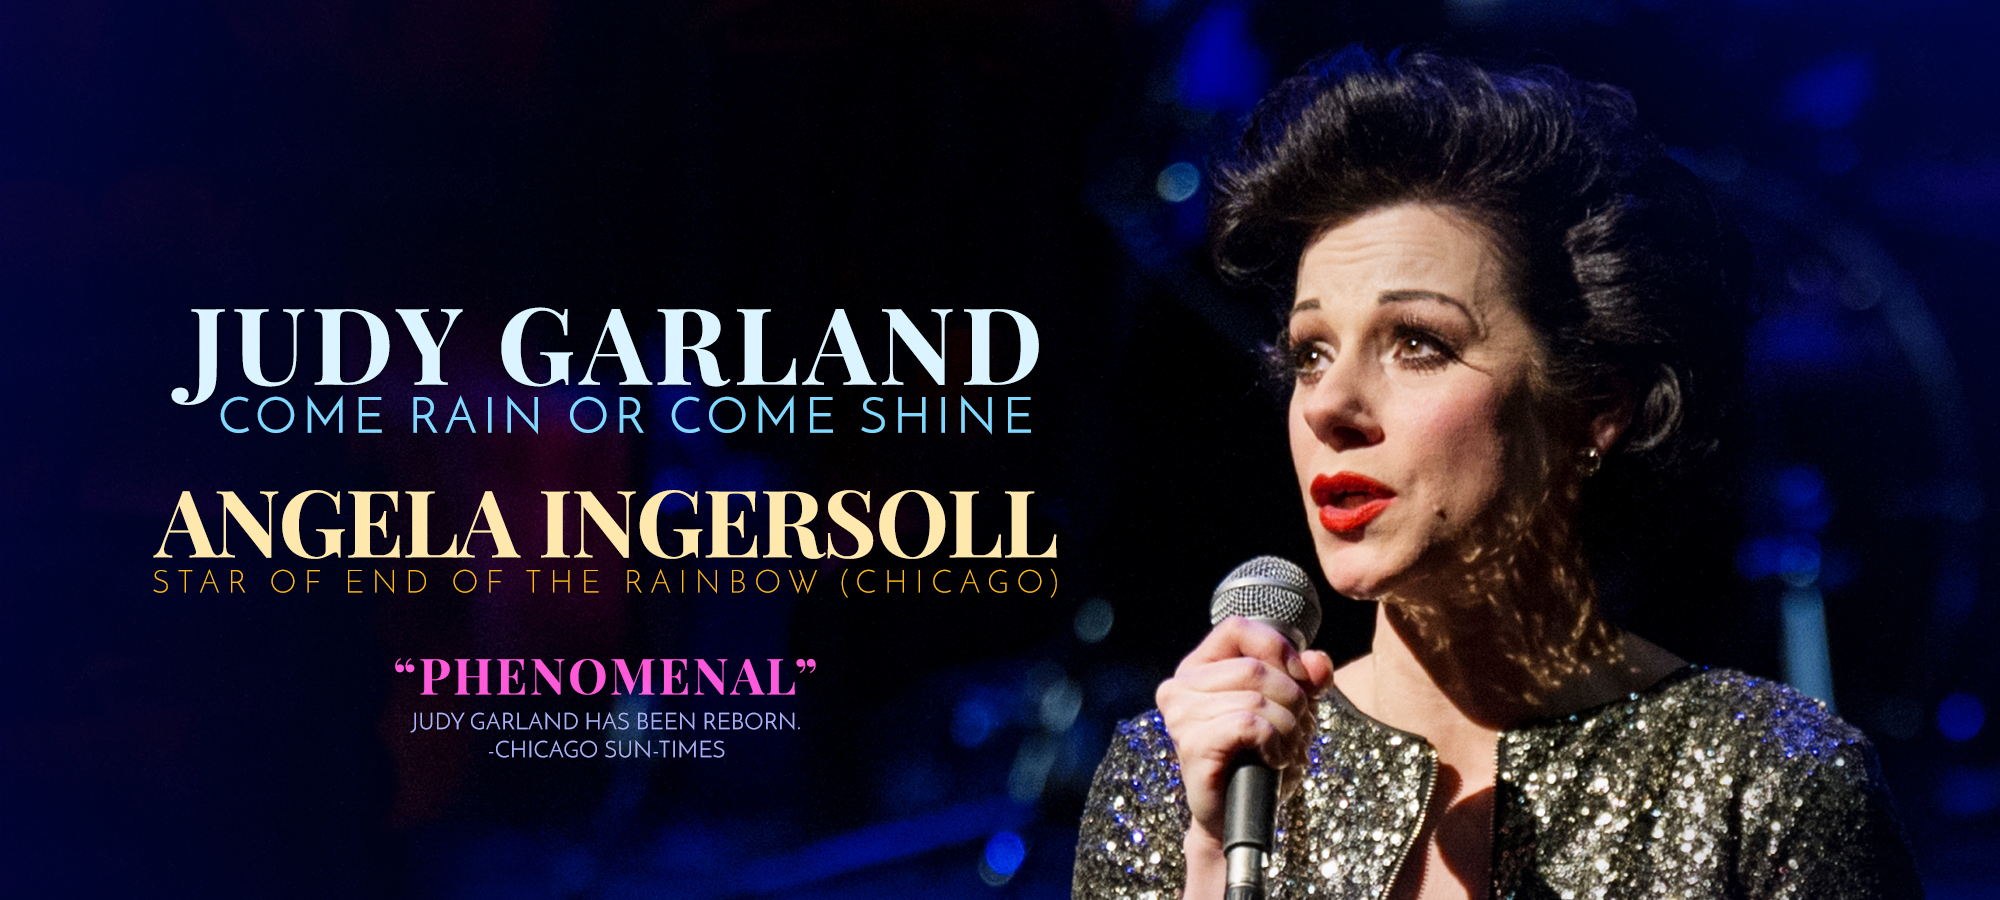 Judy Garland: Come Rain or Come Shine